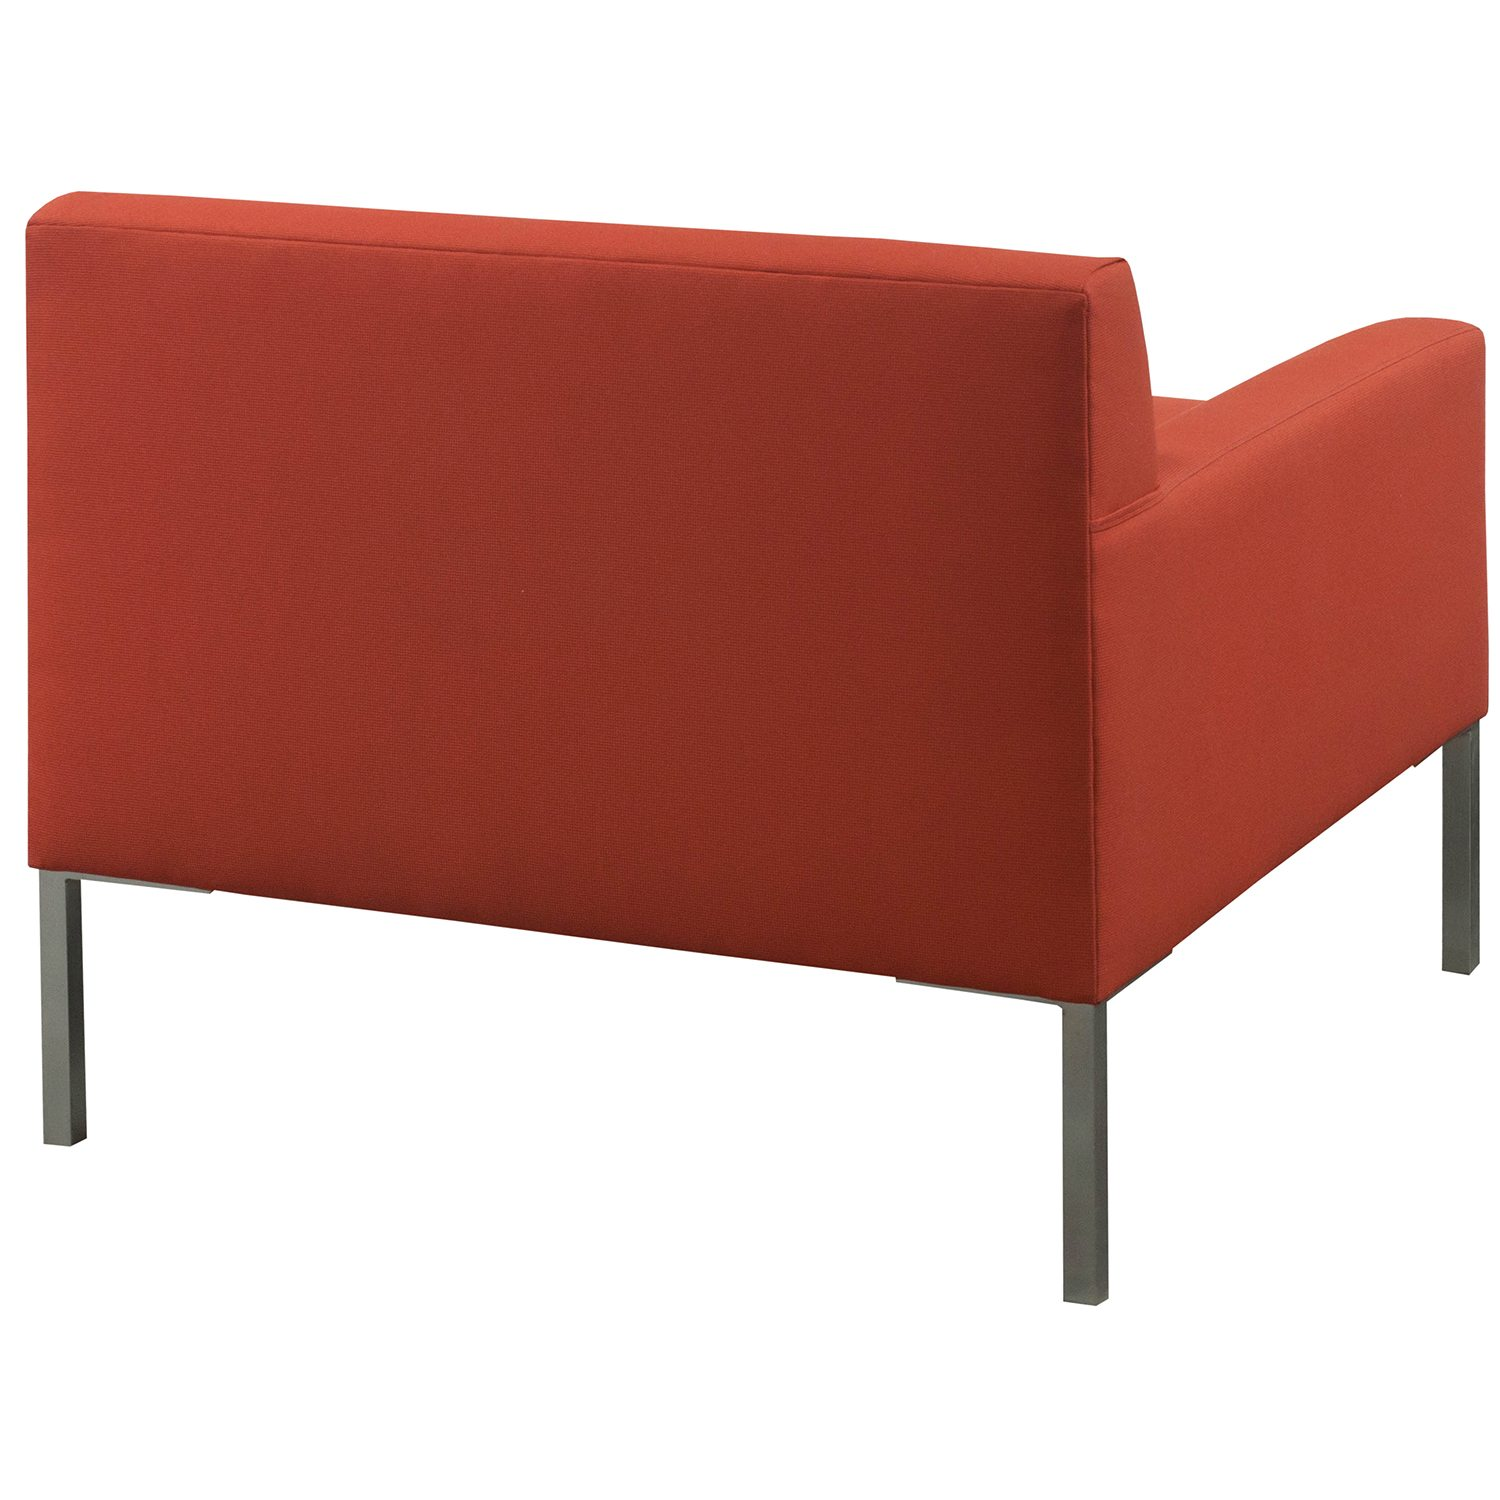 Orange Lounge Chair Orange Lounge Chair 03 National Office Interiors And